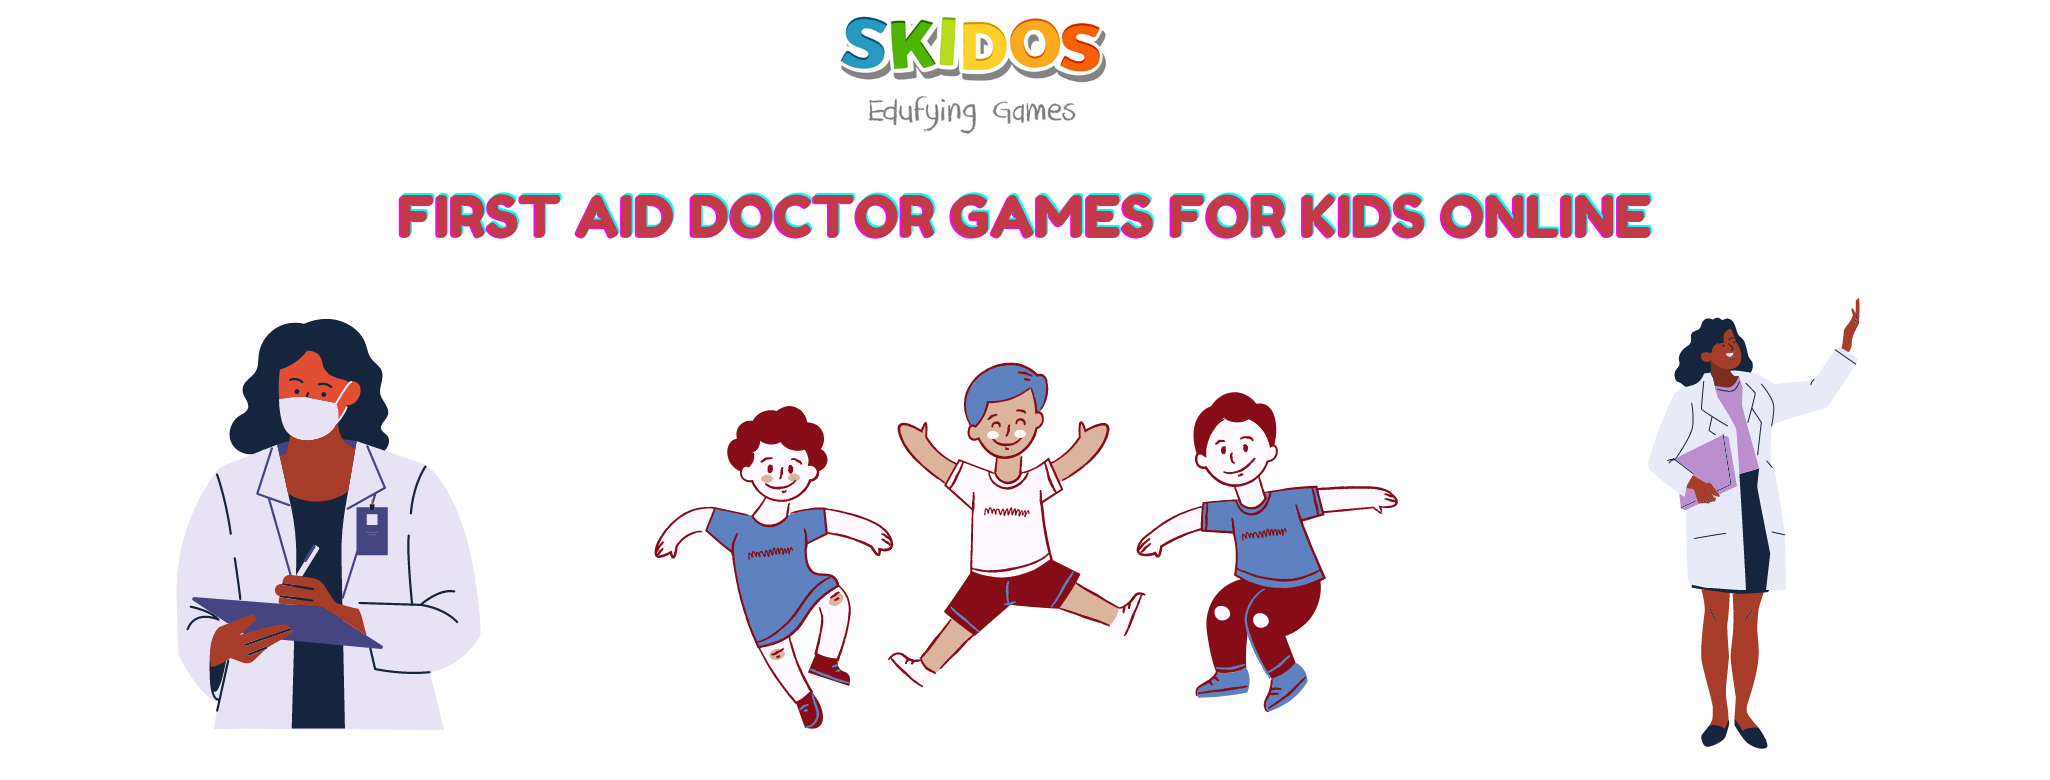 First Aid Games for Kids: Awarded Interactive Role-play